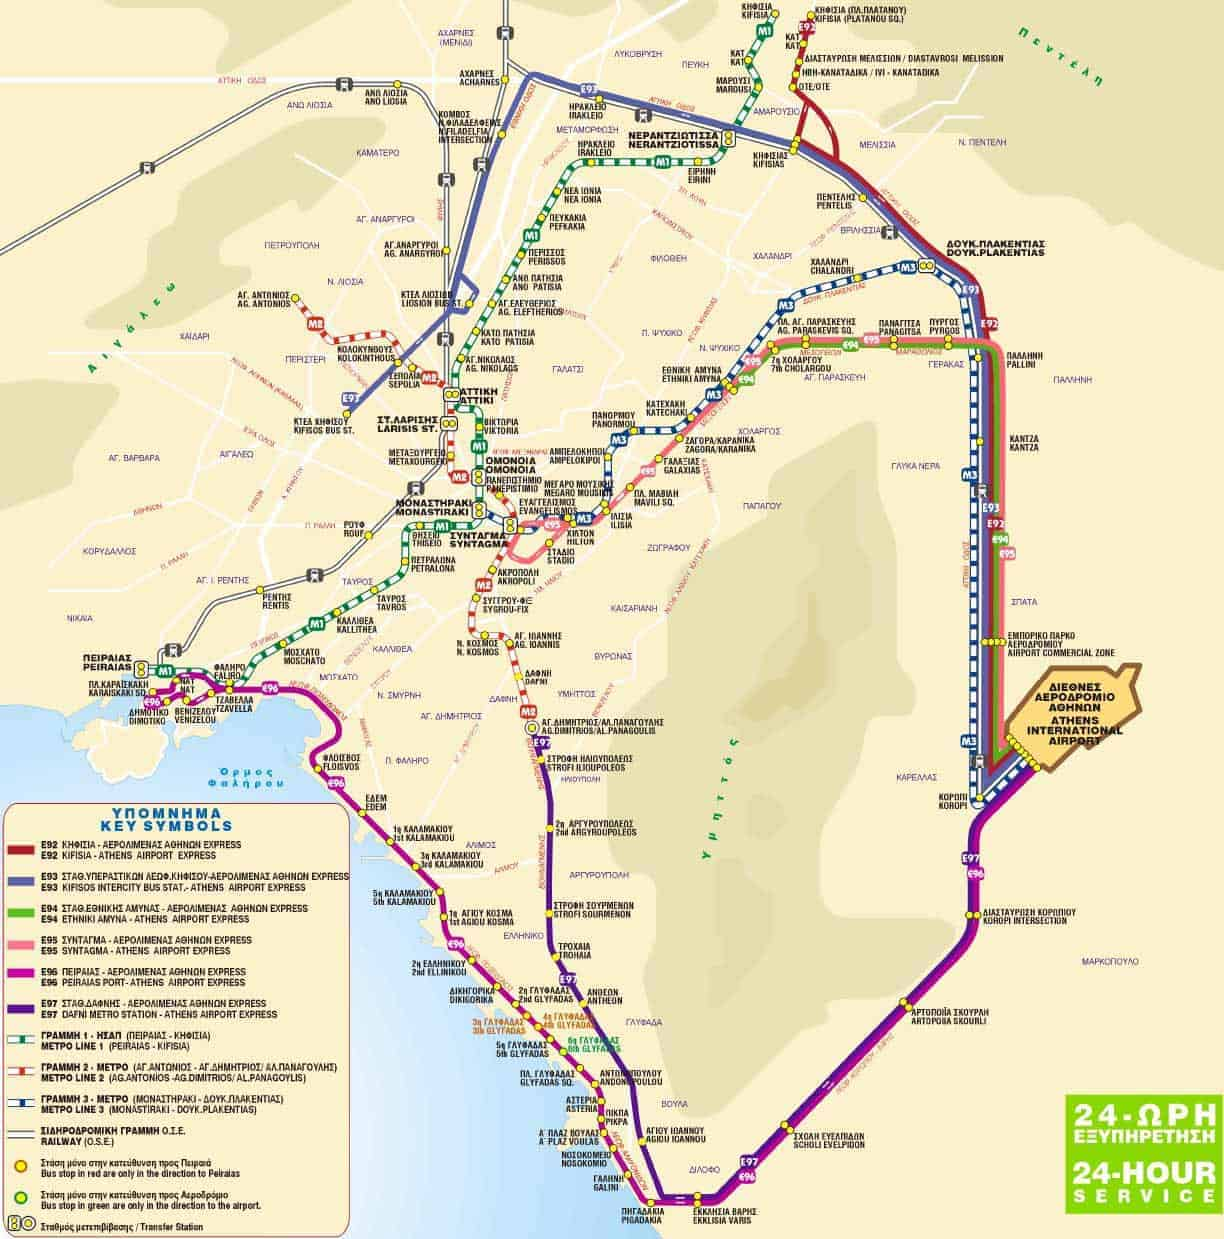 athens-express-bus-to-airport-map_aegialis hotel & spa